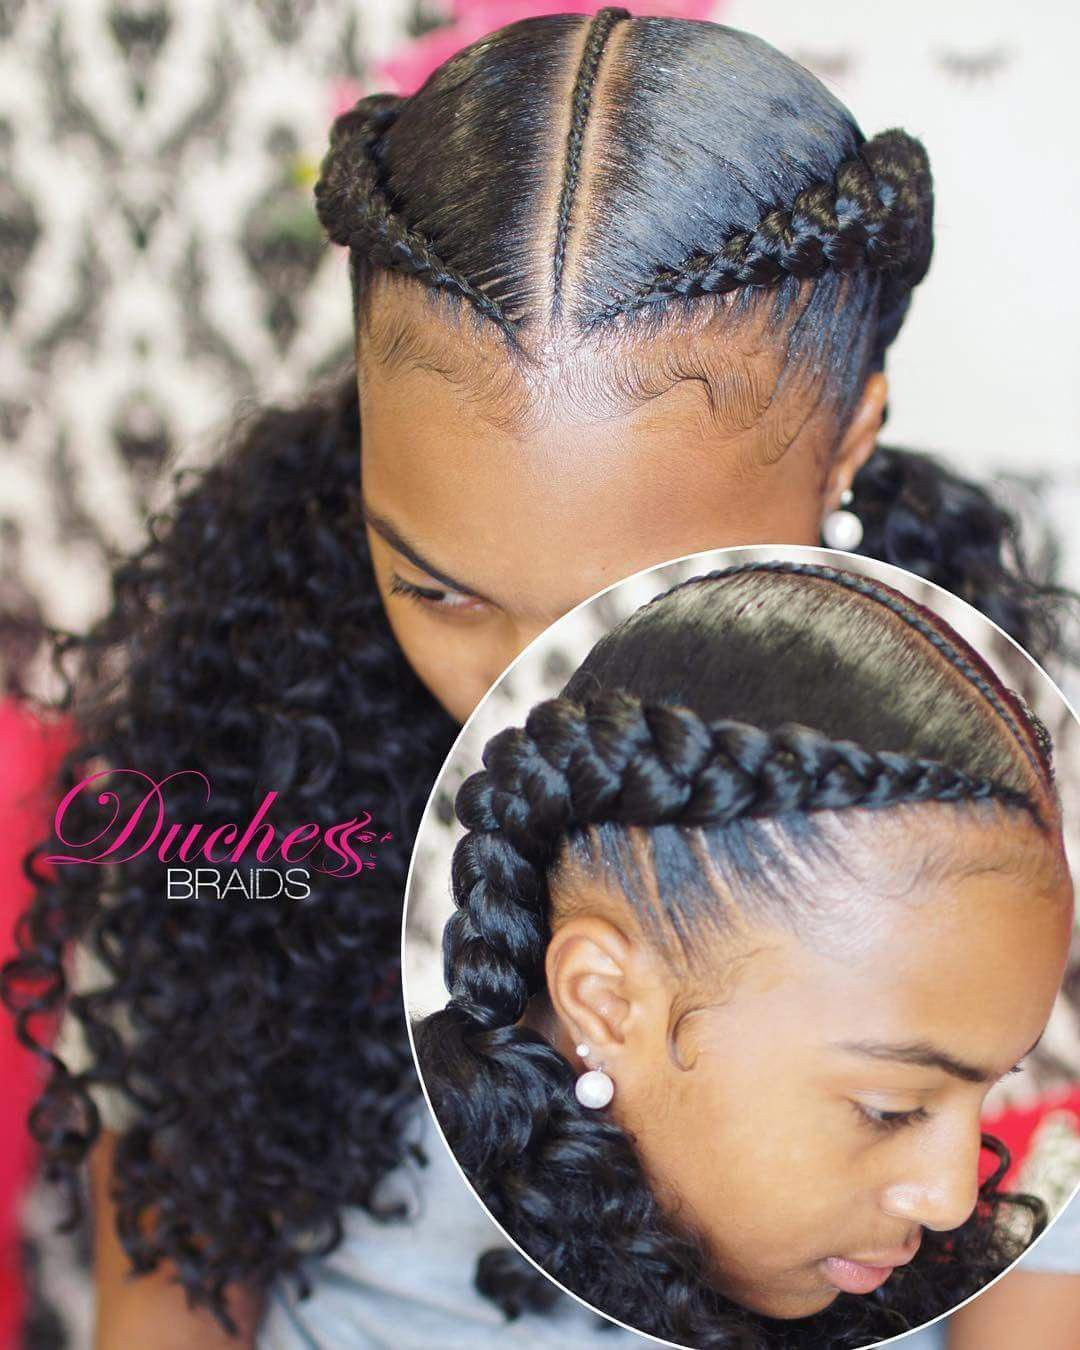 Slicked Back Ponytail Easy Hairstyle You Ve Seen It On The Runway Or On The Red Carpet The Slicked Two Braid Hairstyles Braided Hairstyles Cornrow Hairstyles